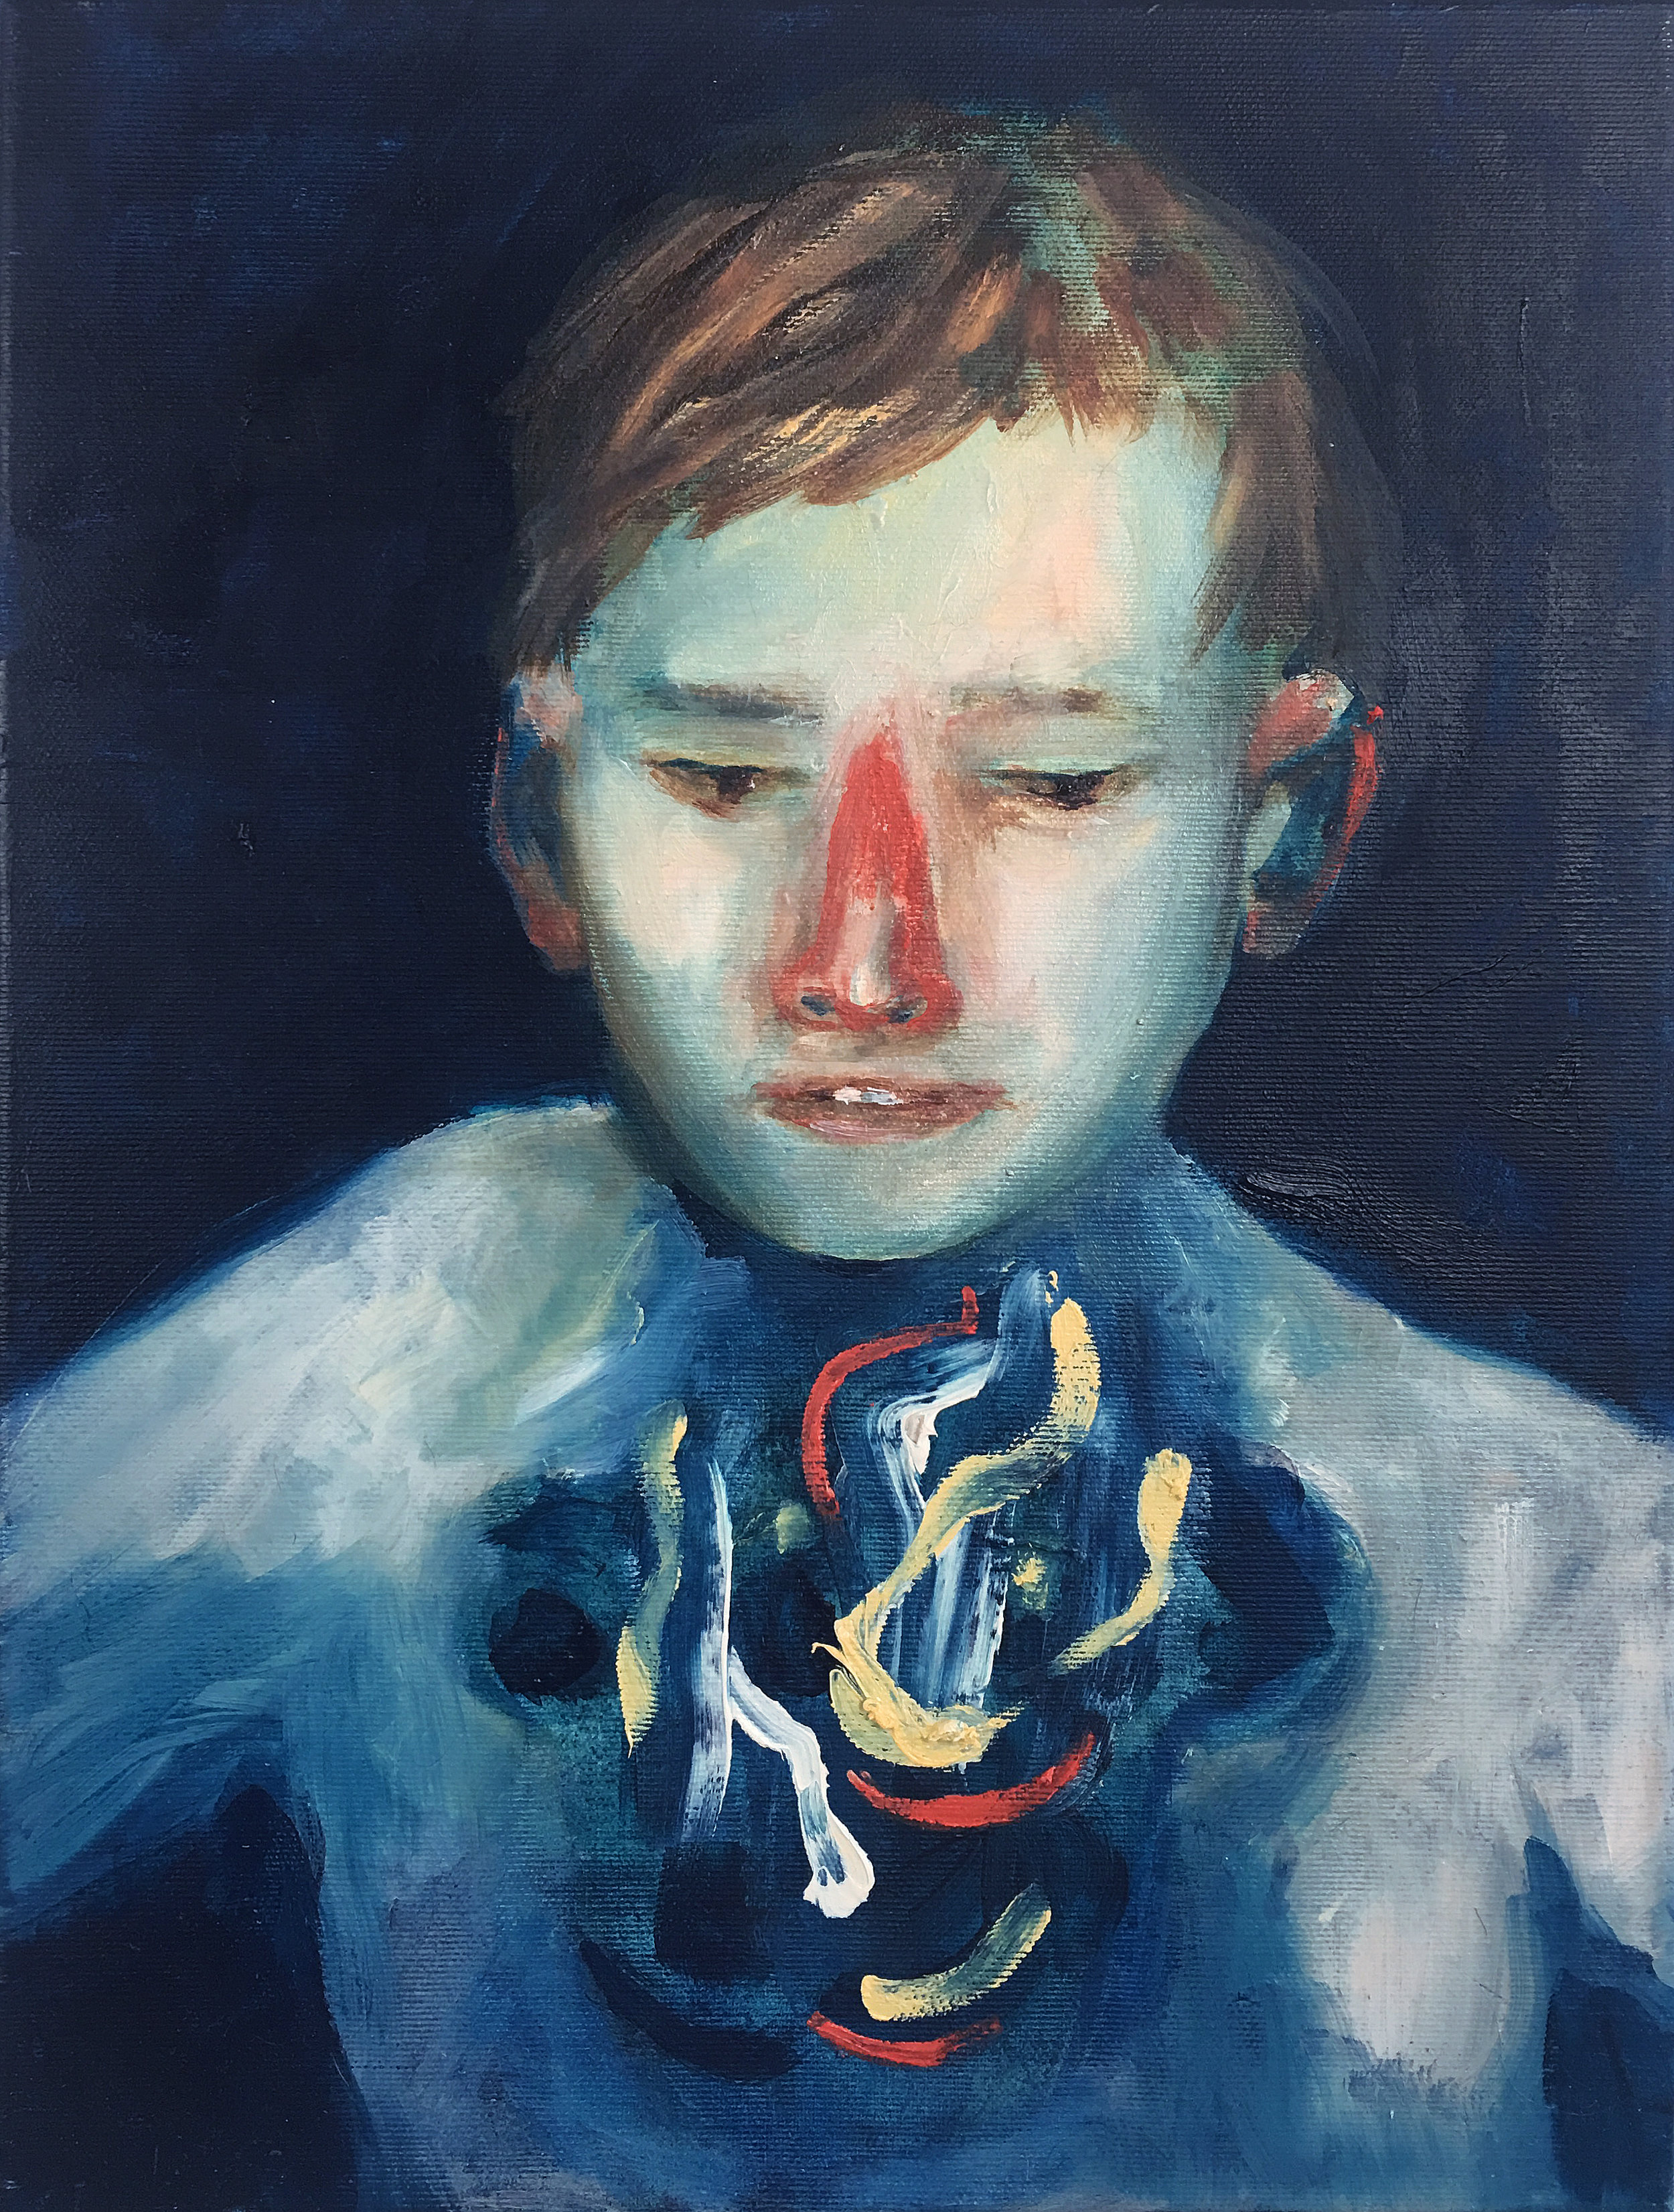 Gloomy Monsters Portrait 1 (Boy),  2018, oil on canvas, 40 x 30 cm